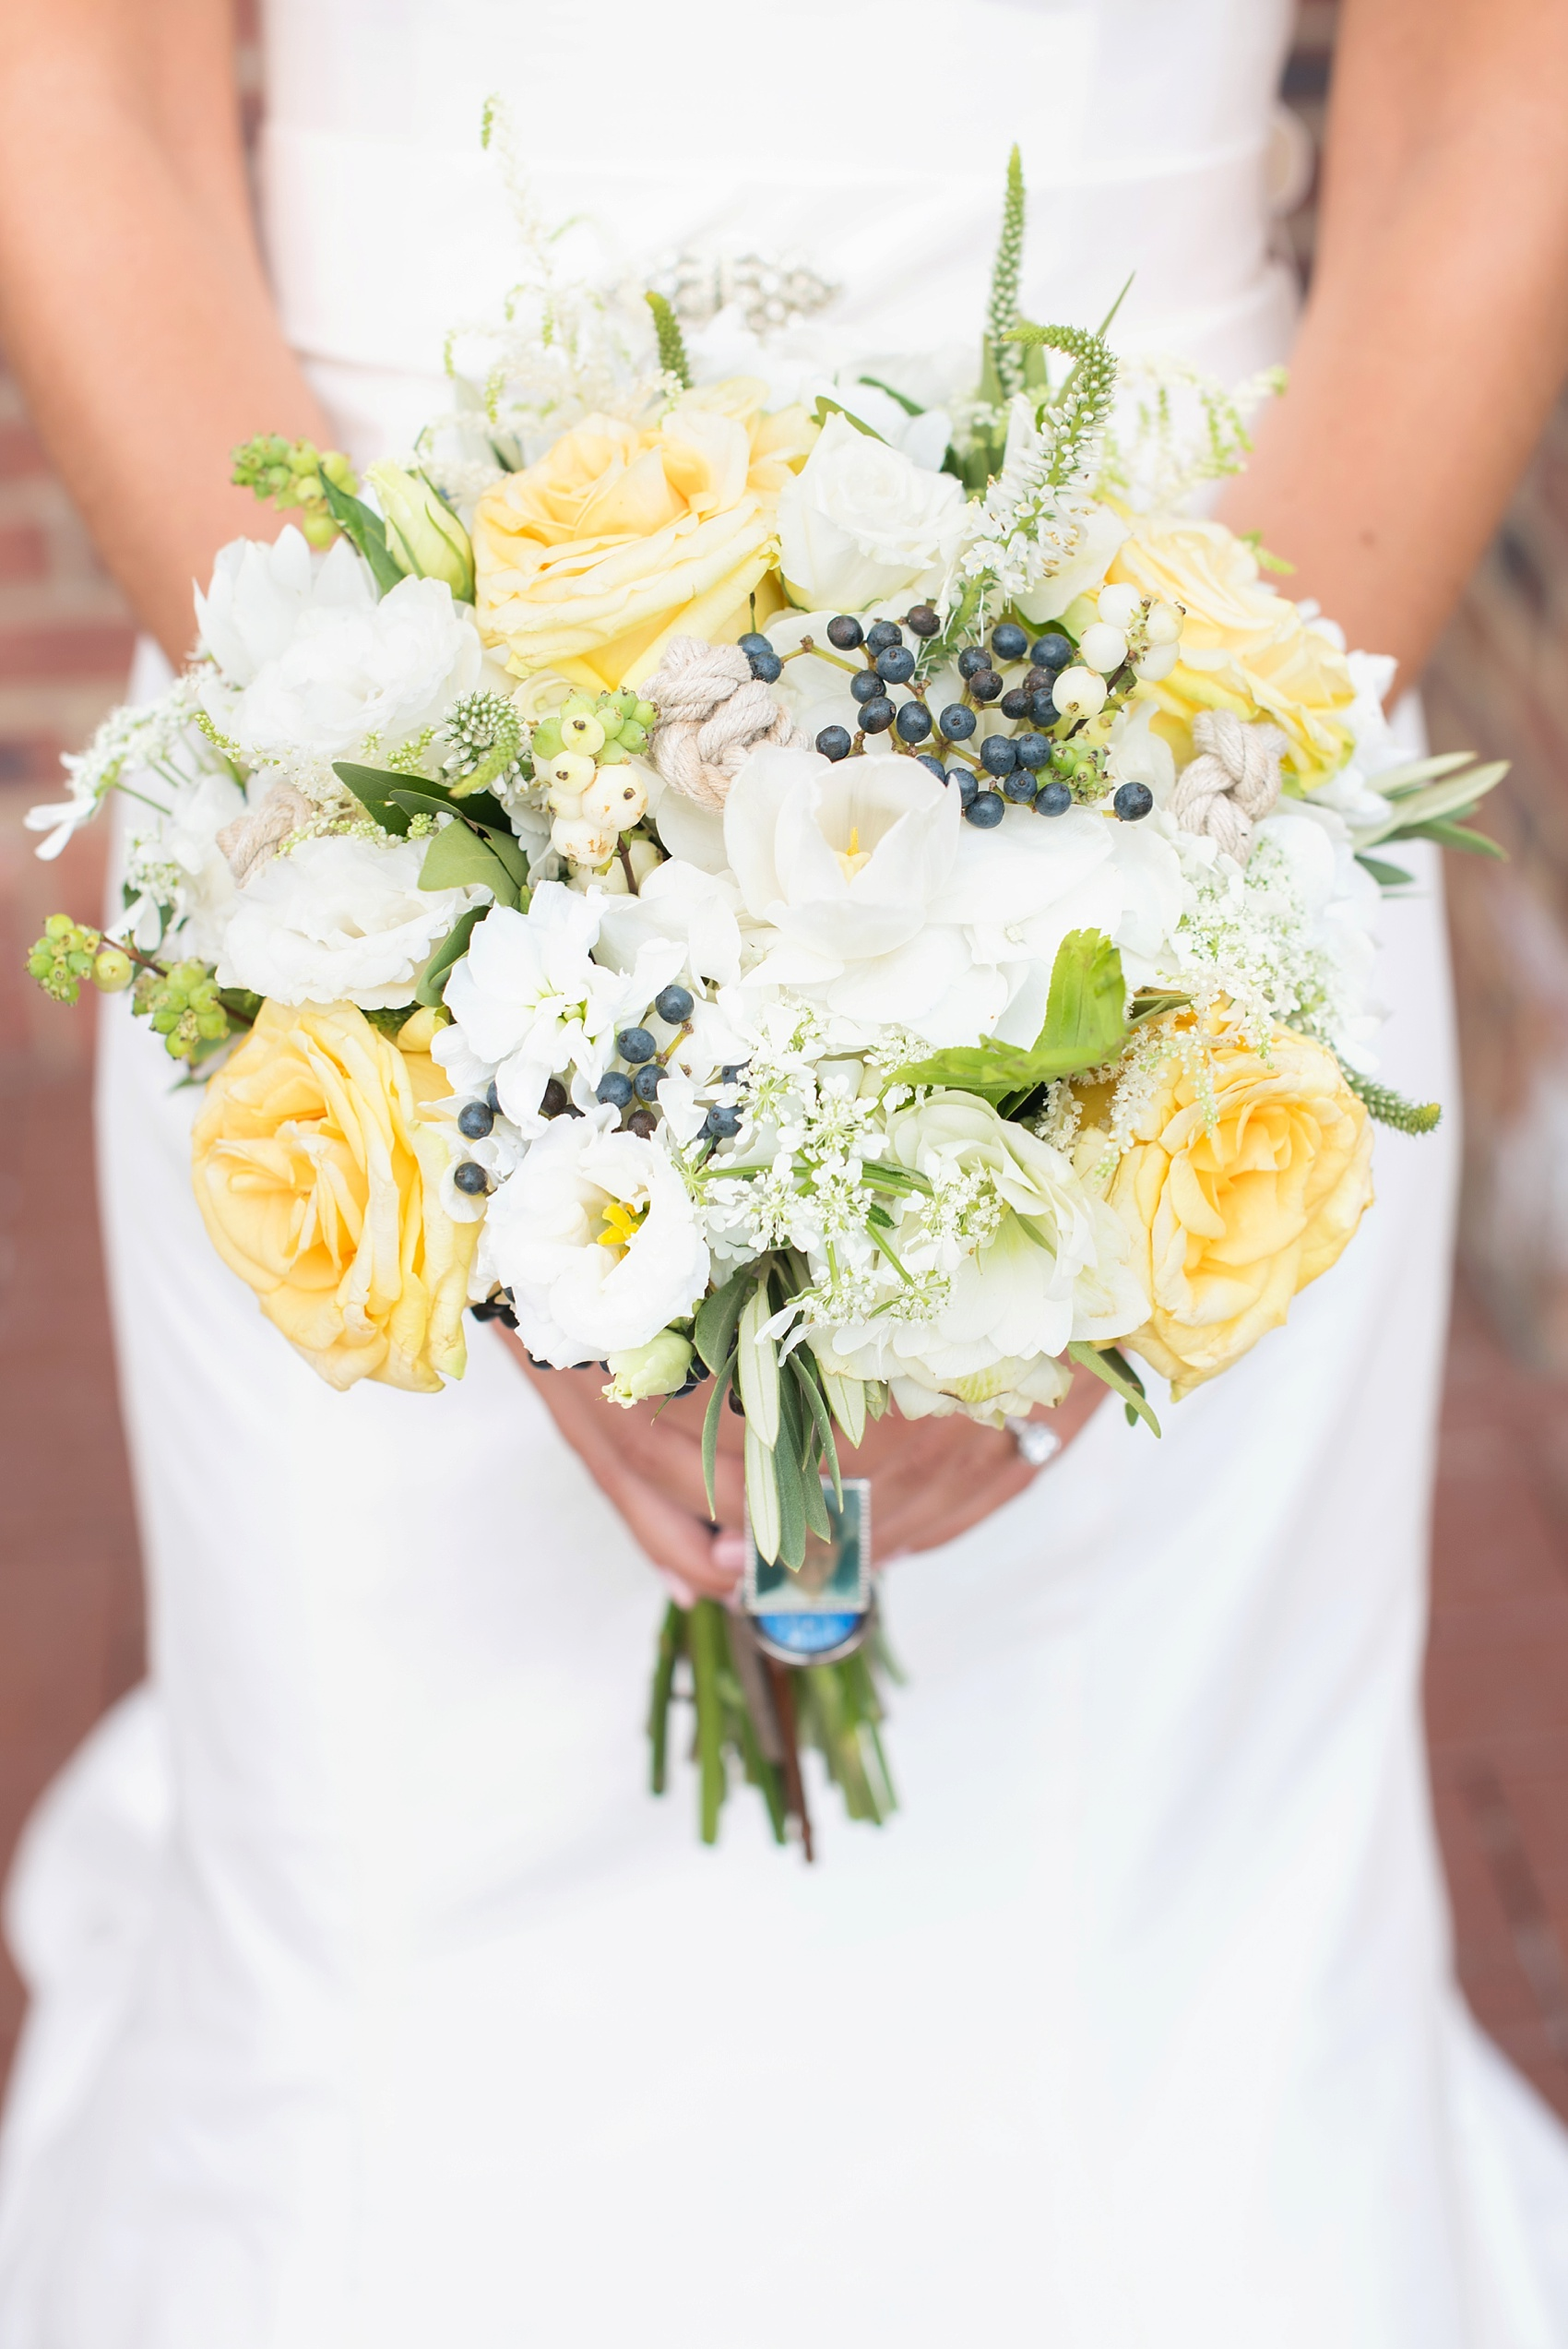 Sailors knots on a nautical themed bouquet in New Jersey at the Molly Pitcher Inn. Photo by Mikkel Paige Photography.